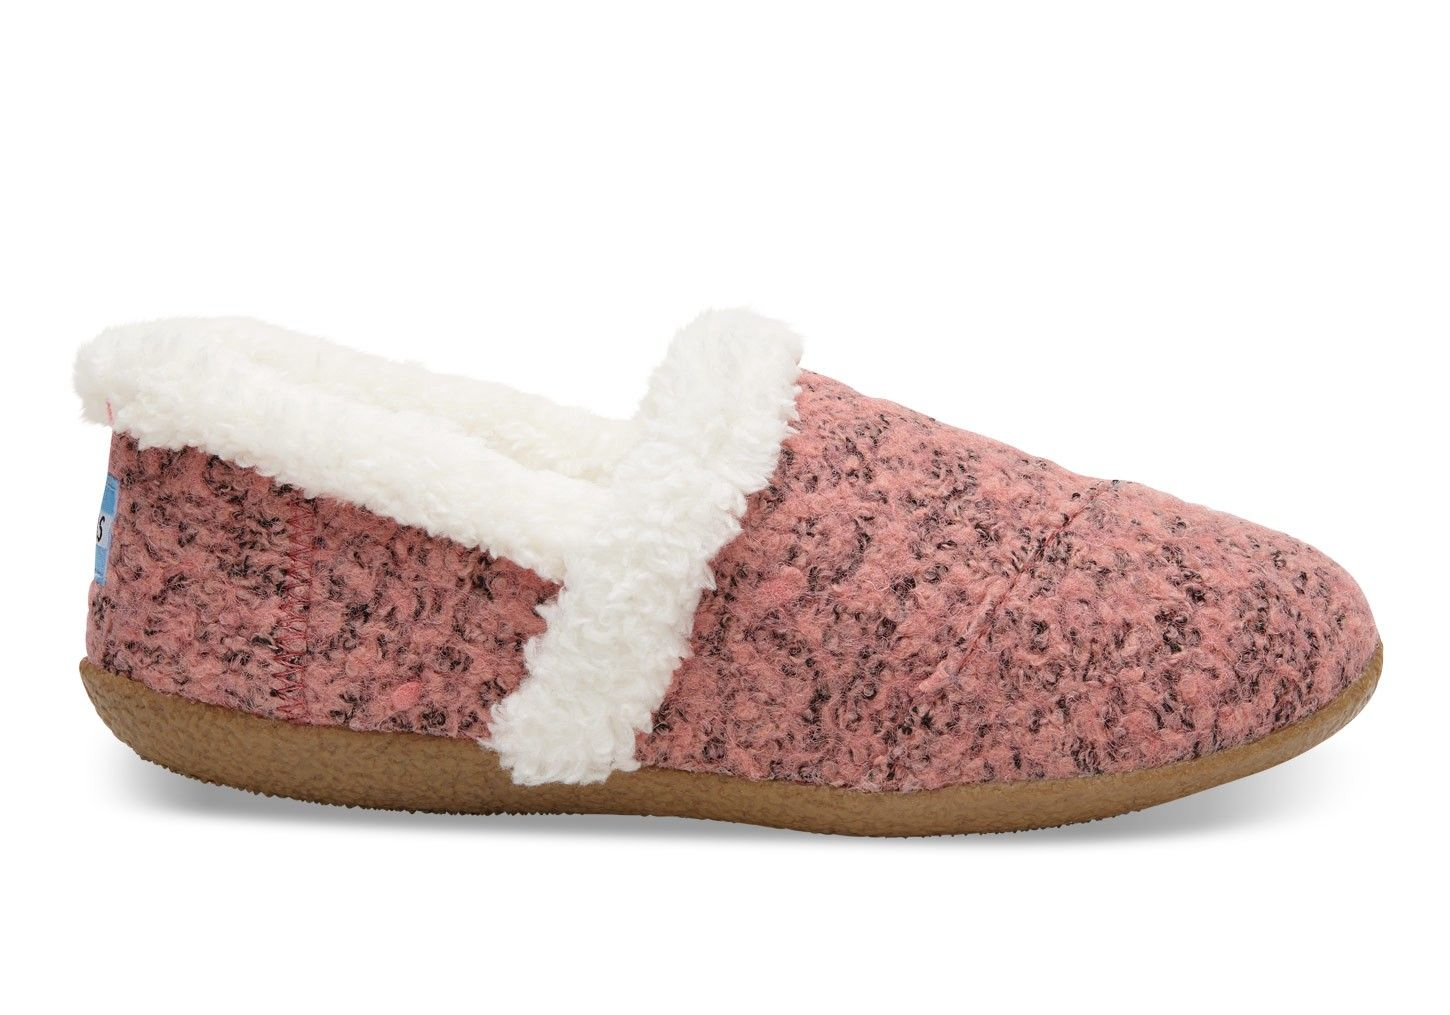 6749131a51a1 TOMS TOMS Faded Rose Woolen Woman House Slippers.  toms  shoes ...